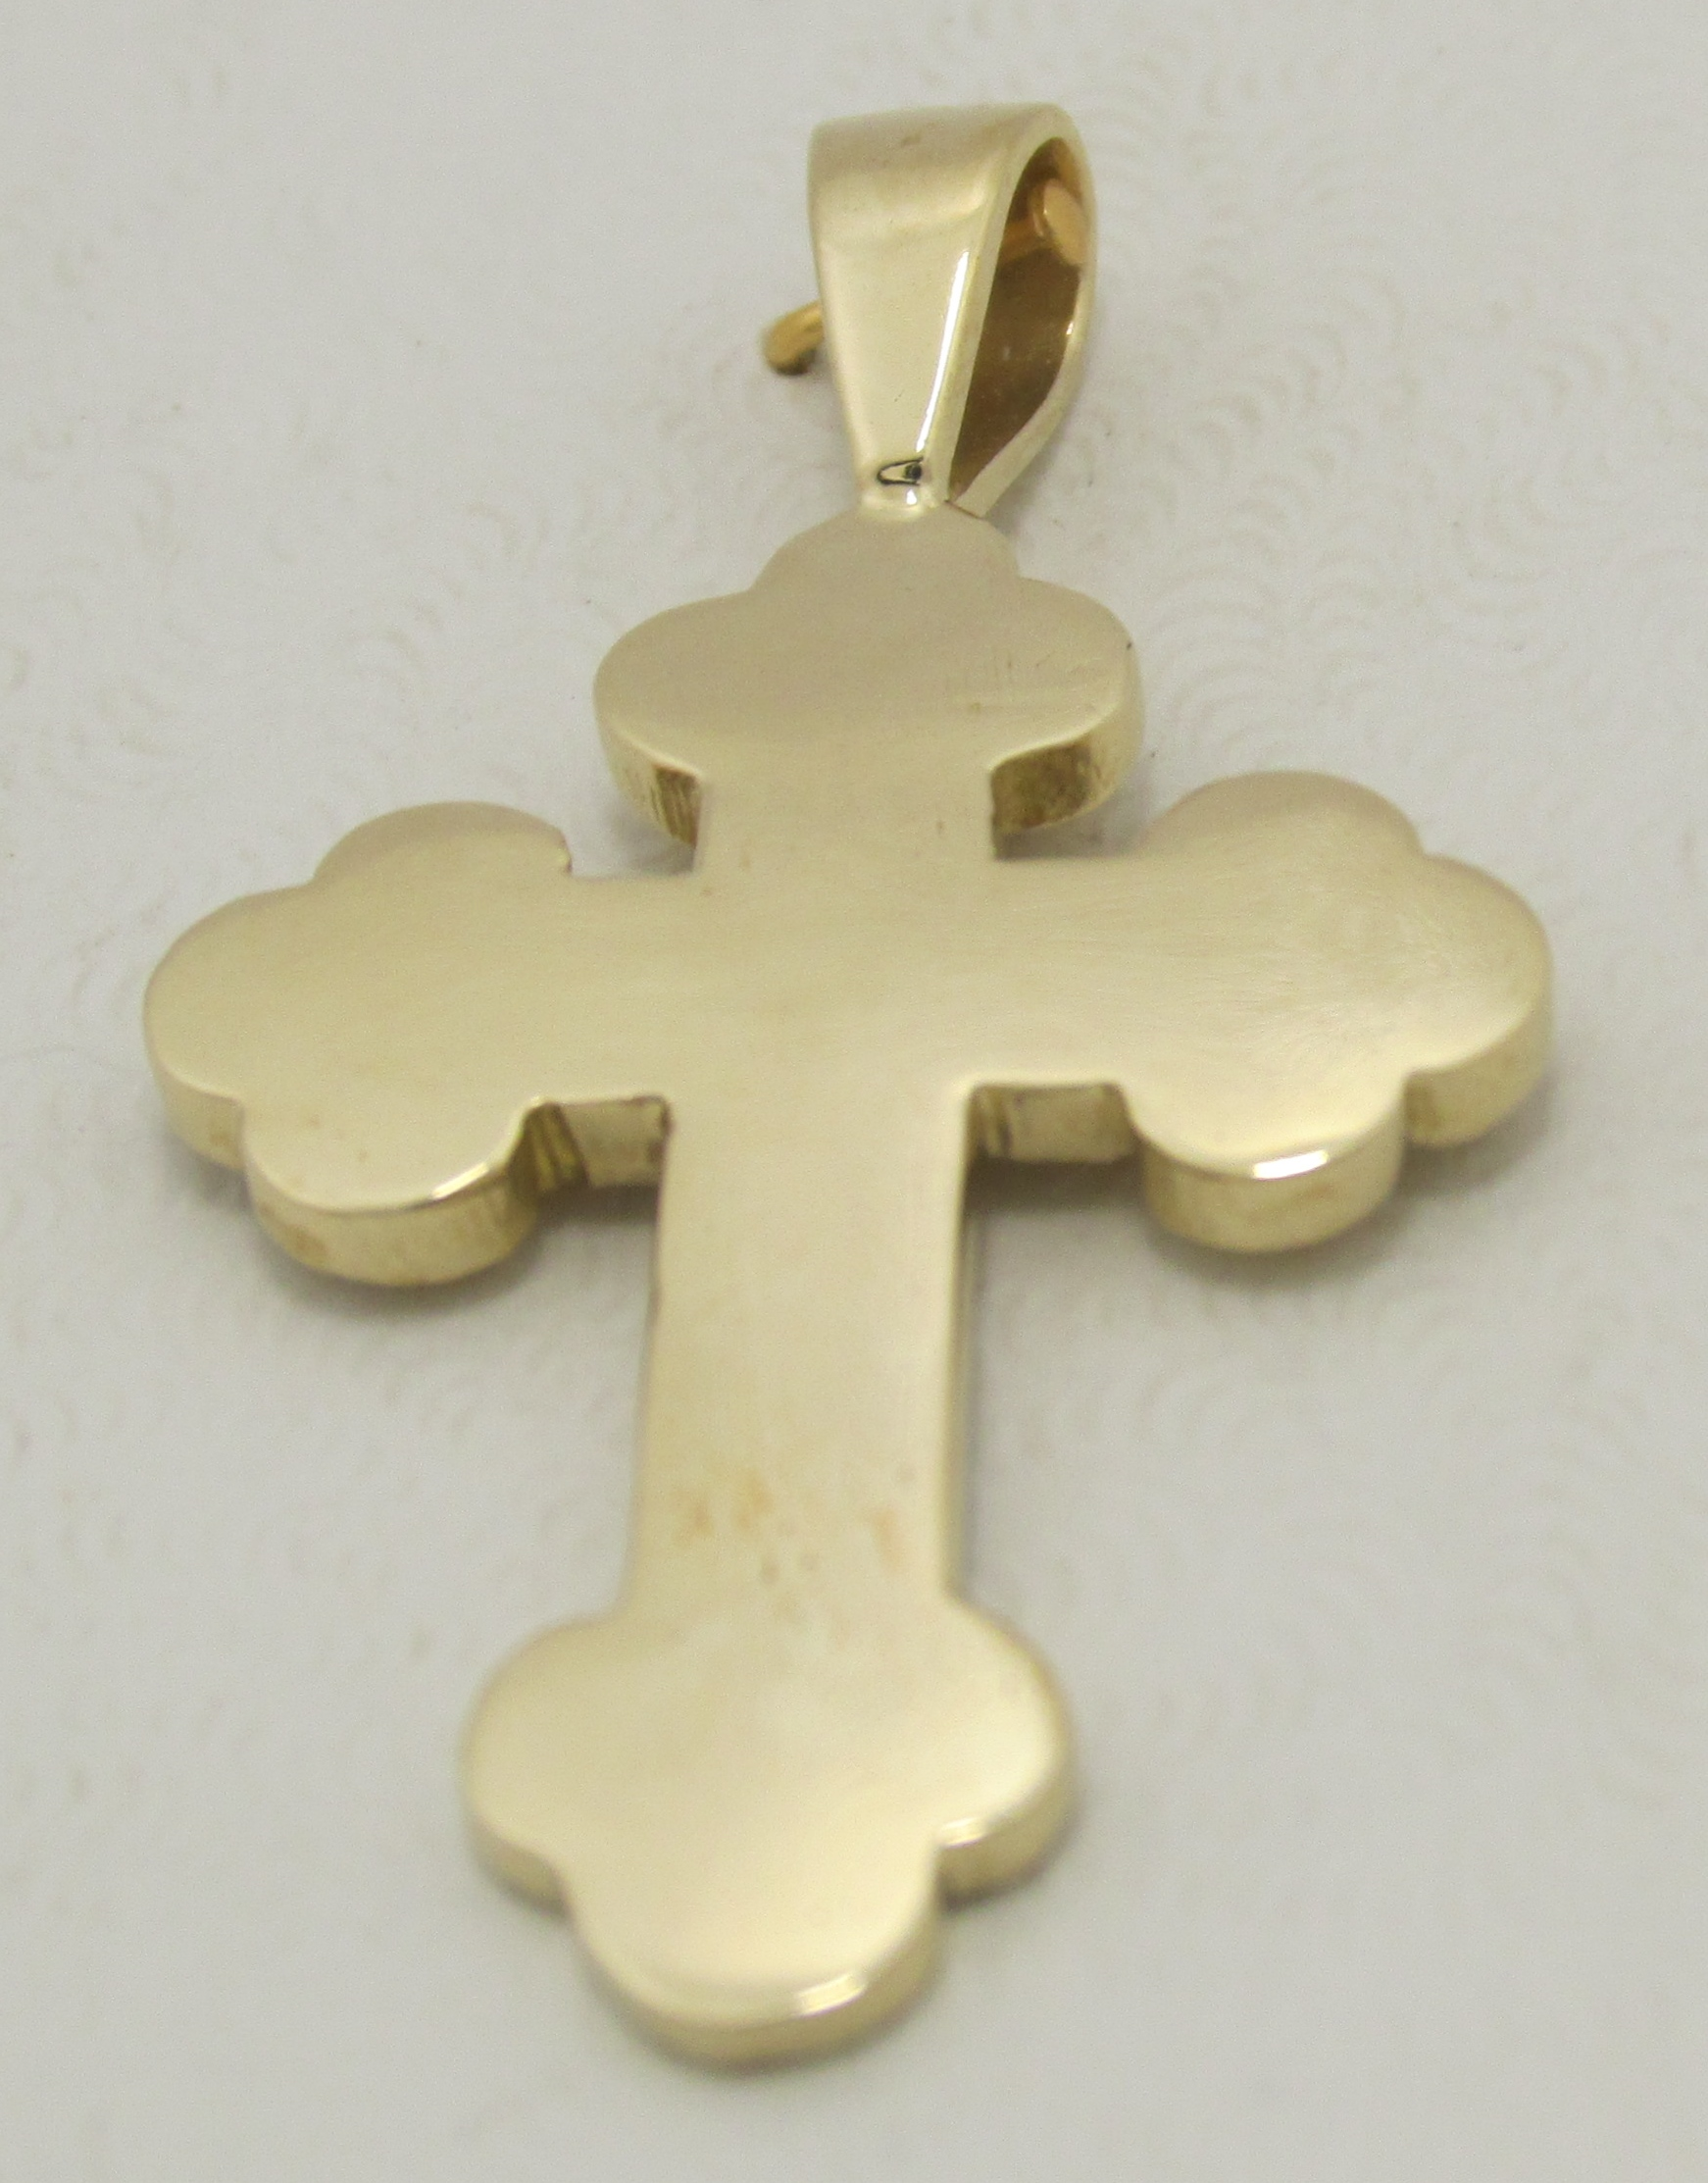 Solid 14k plain fancy cross pendant 406 grams of gold exquisite solid 14k plain fancy cross pendant 406 grams of gold aloadofball Image collections